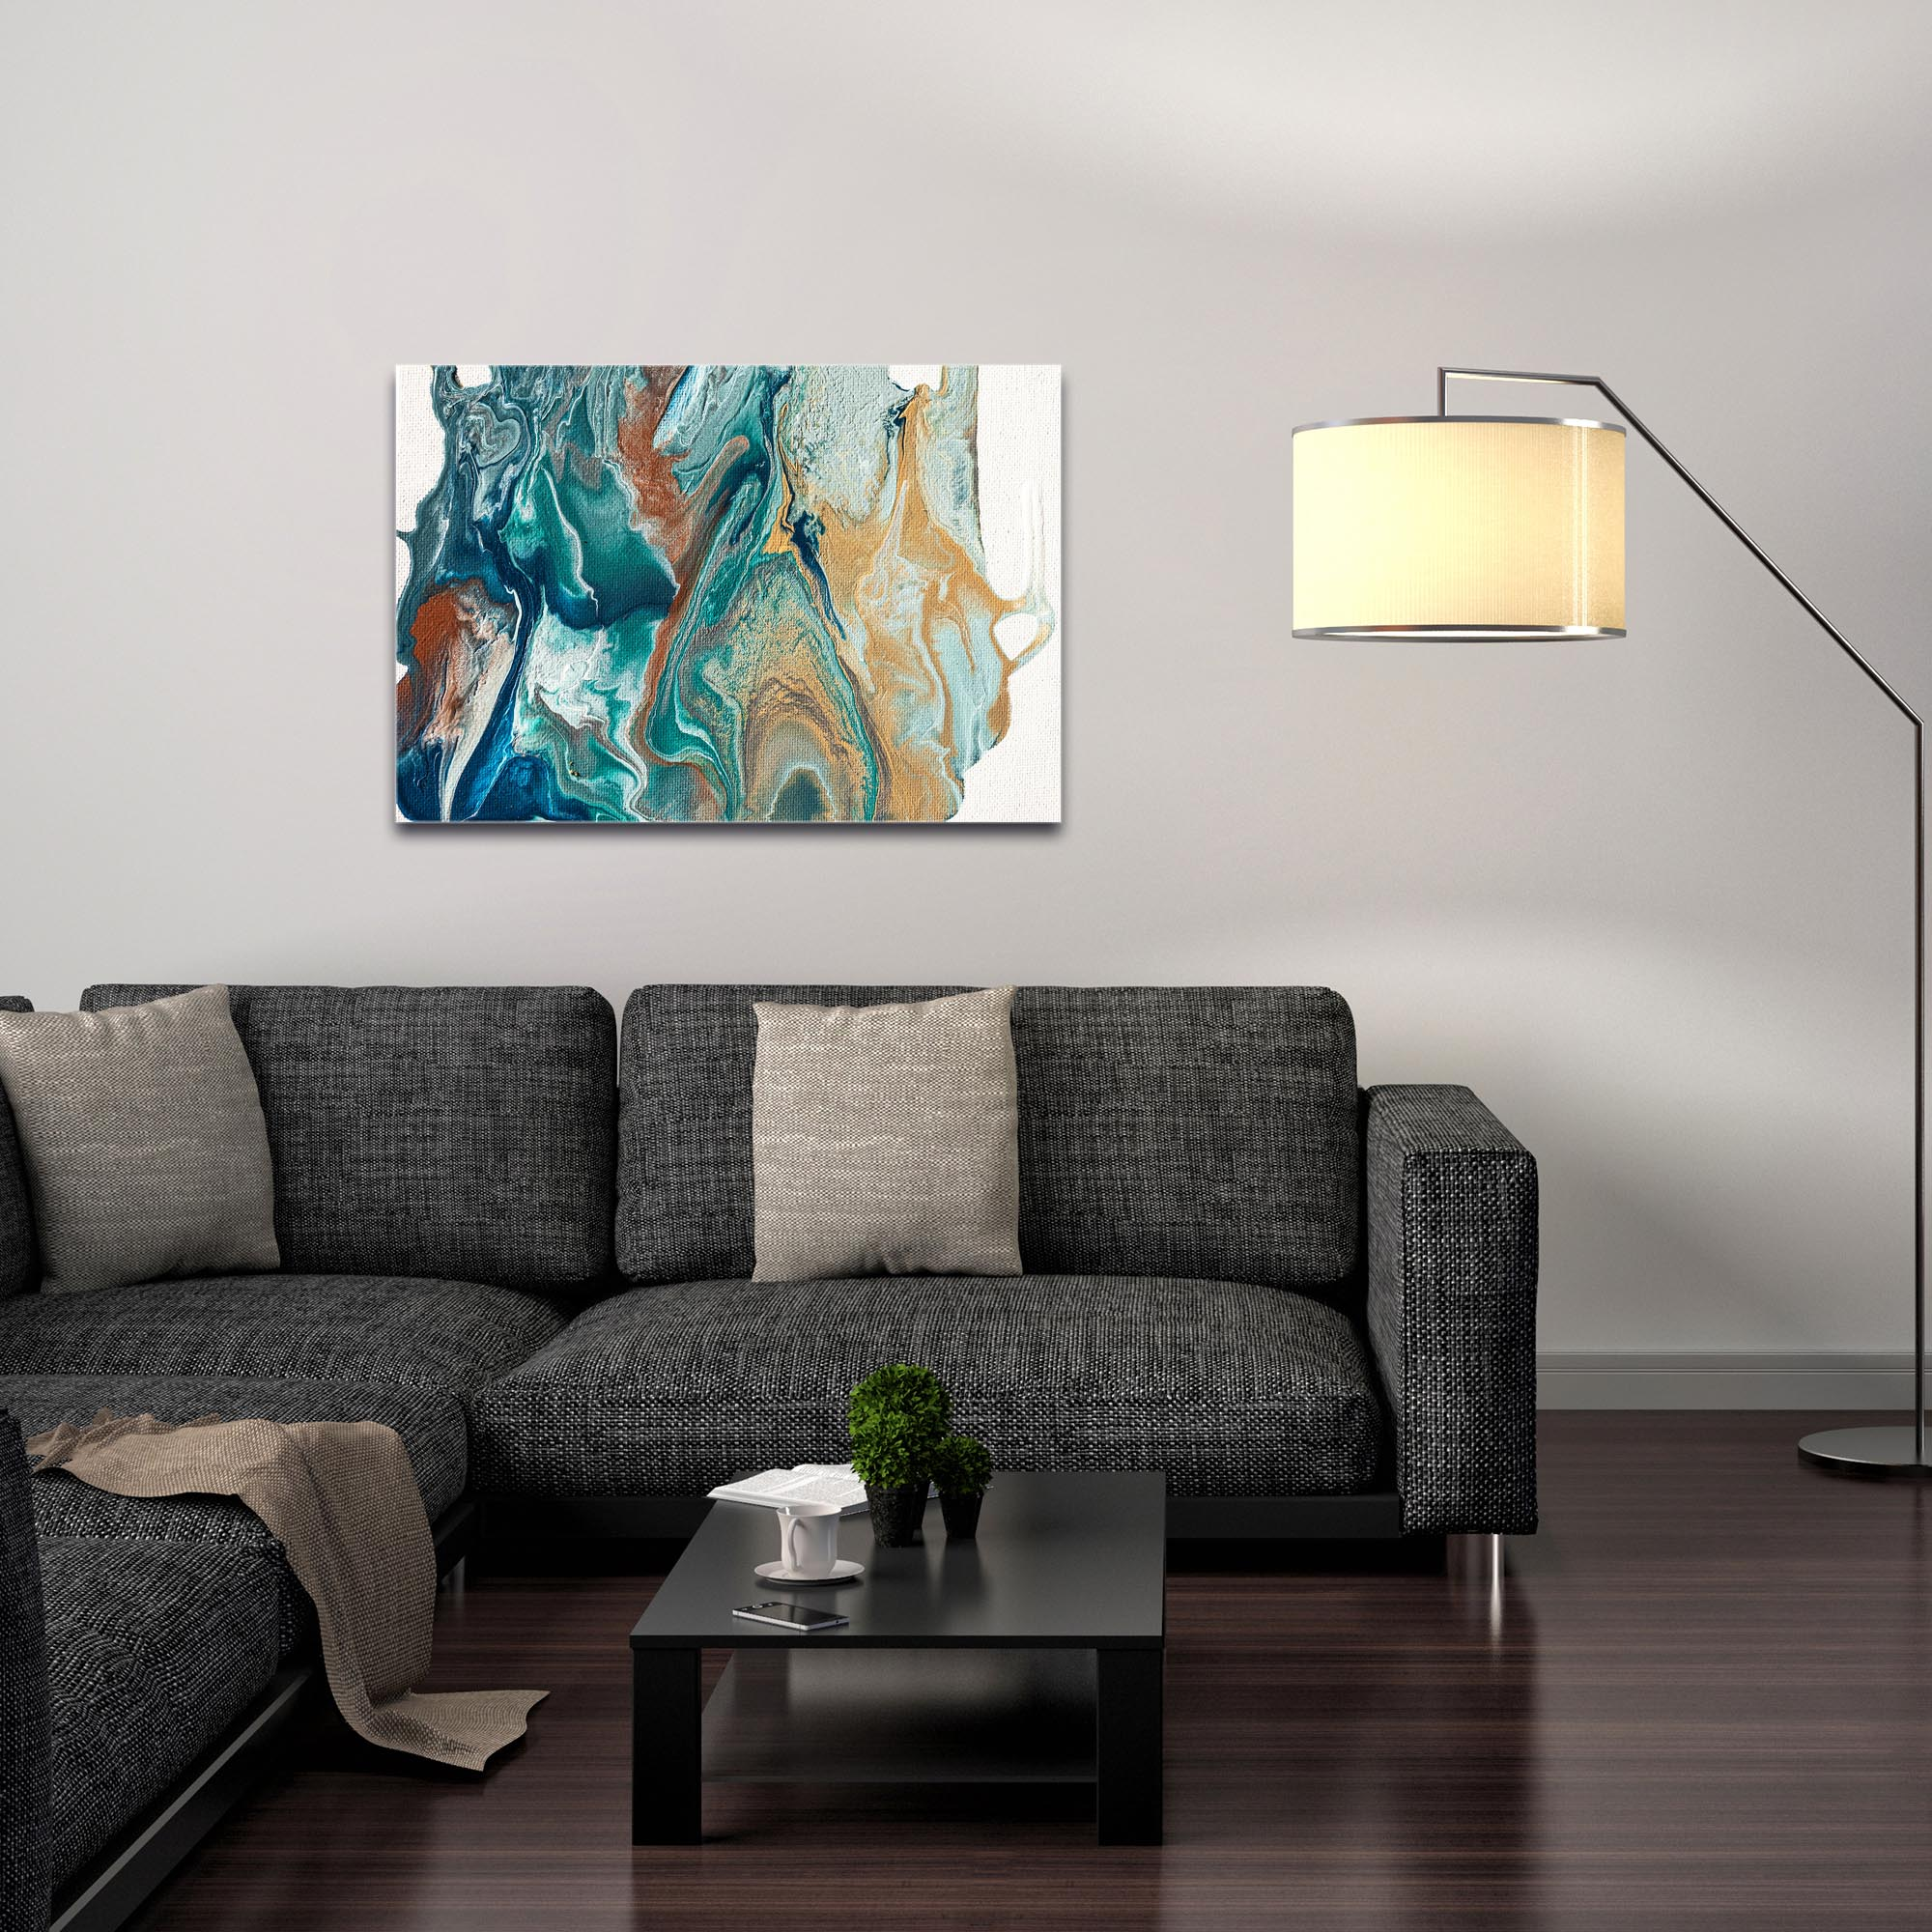 Abstract Wall Art 'Earth 2' - Urban Splatter Decor on Metal or Plexiglass - Image 3